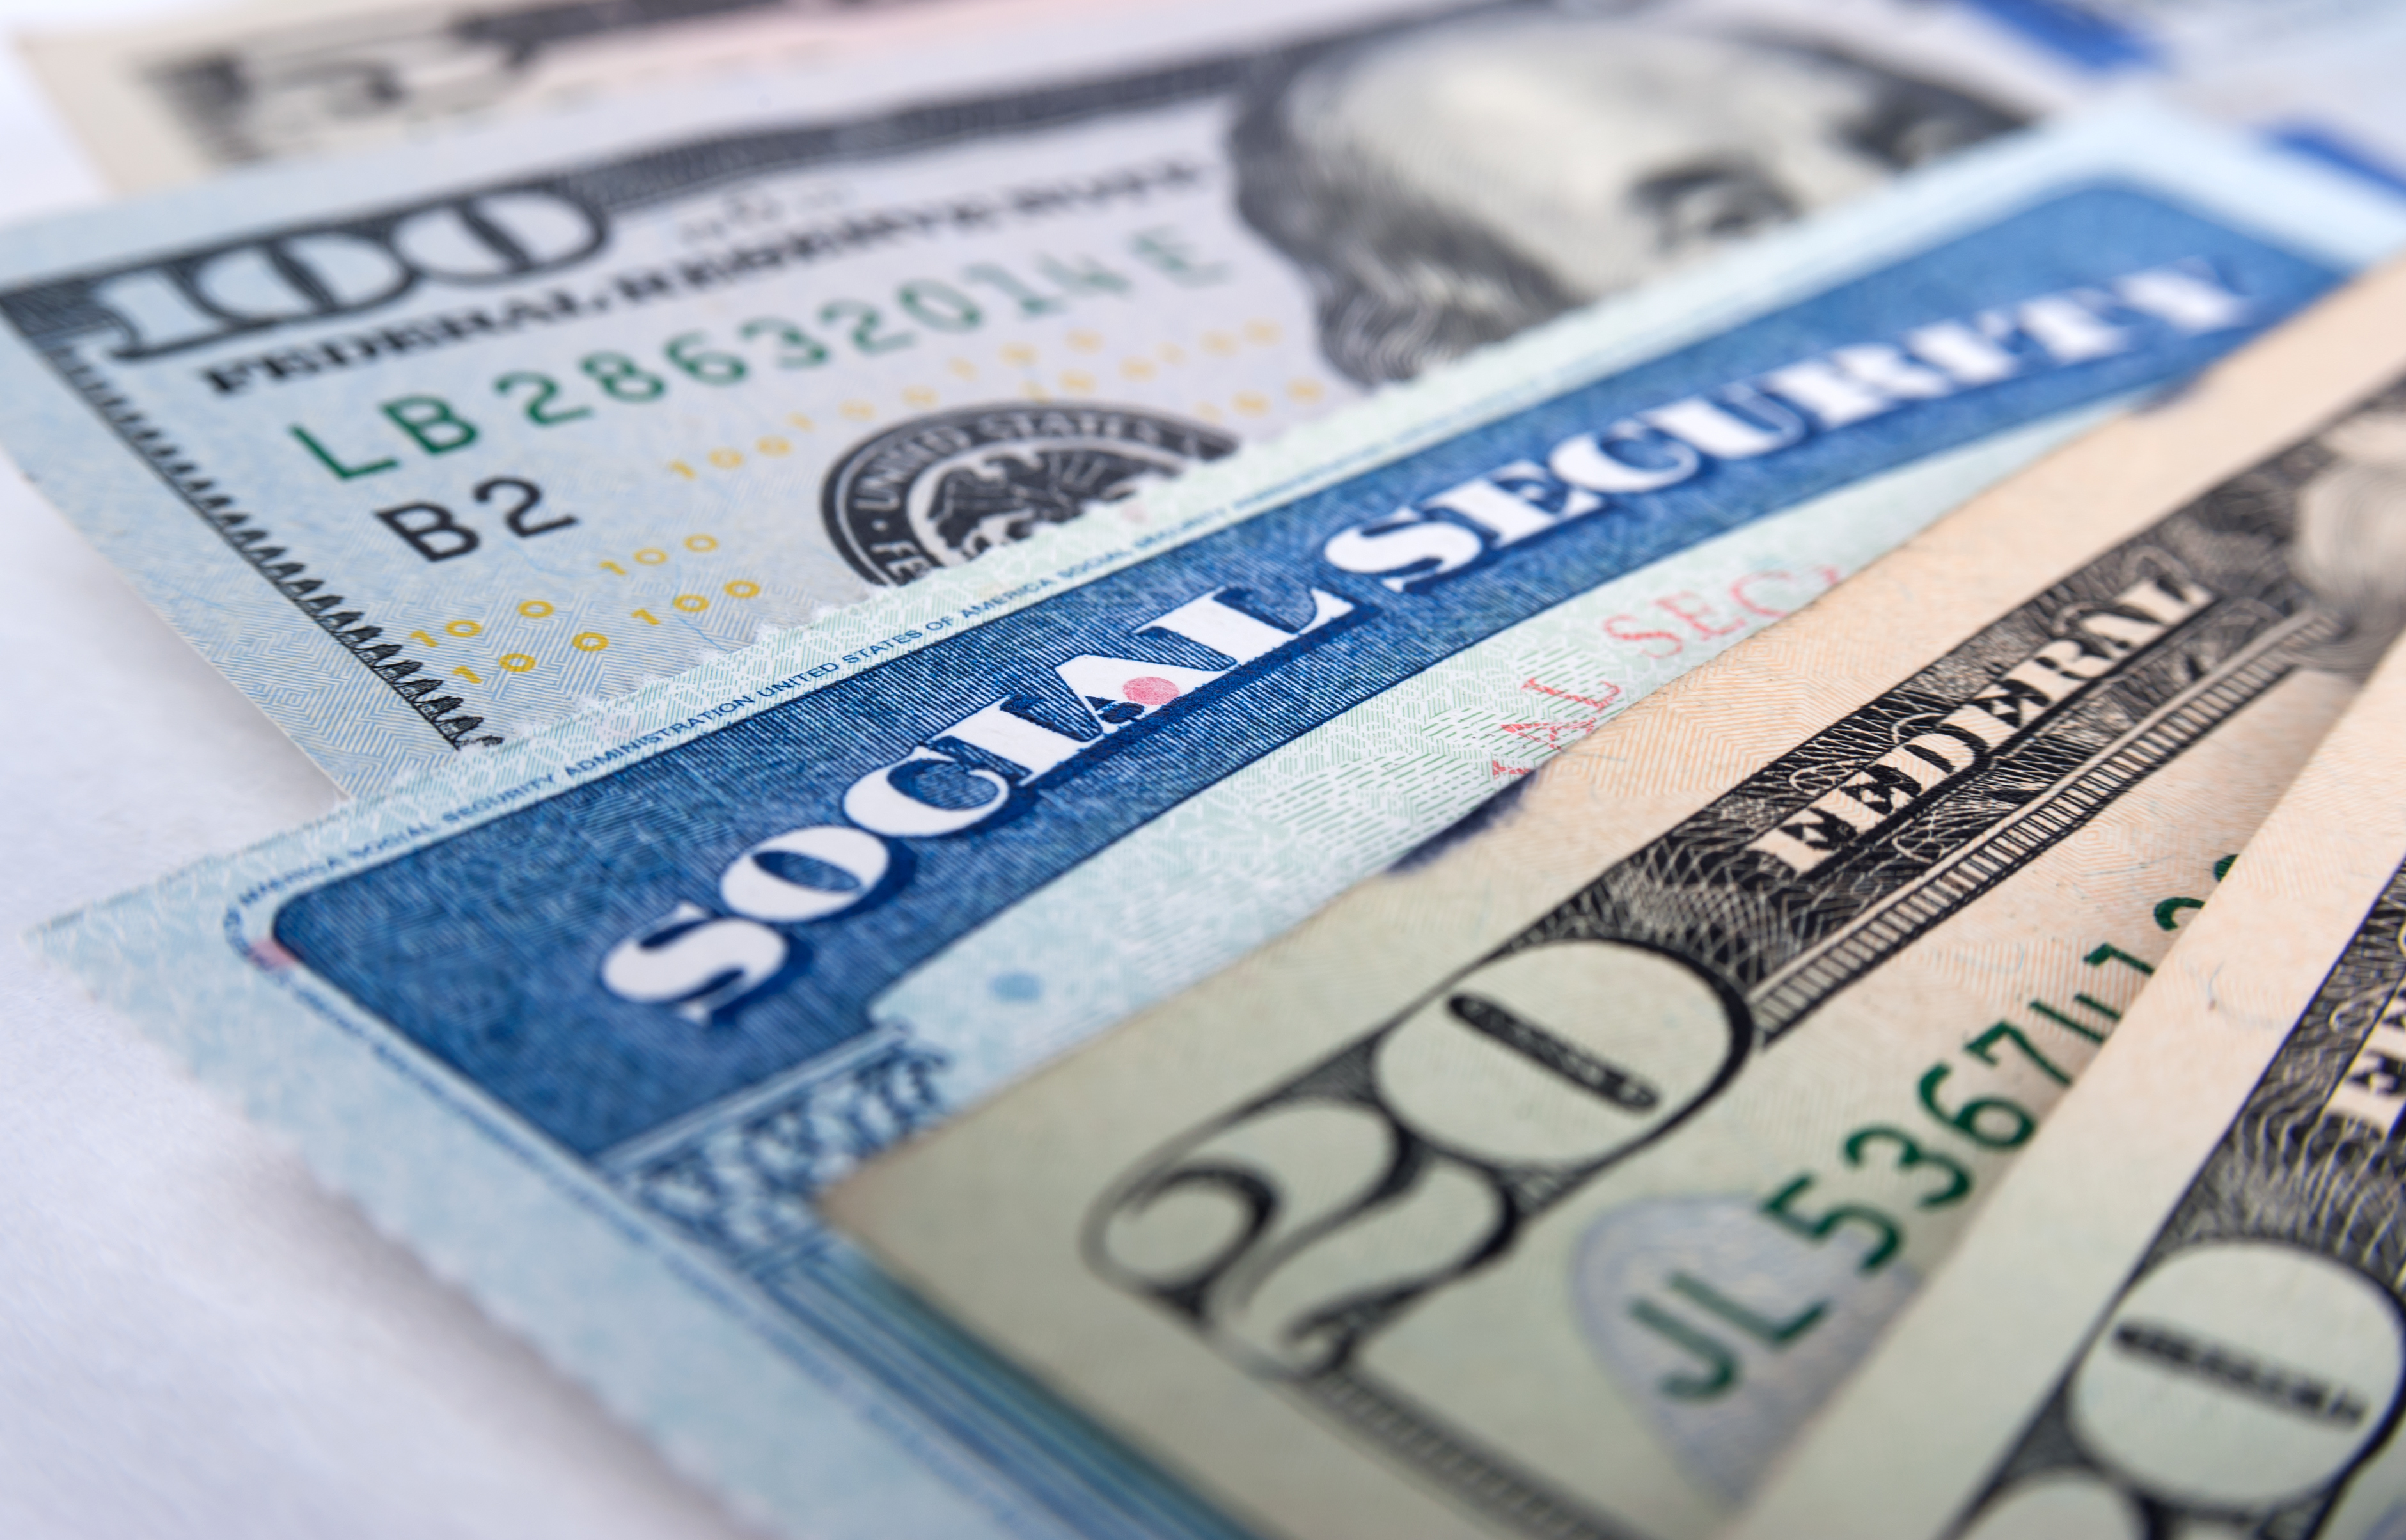 The Social Security Scam